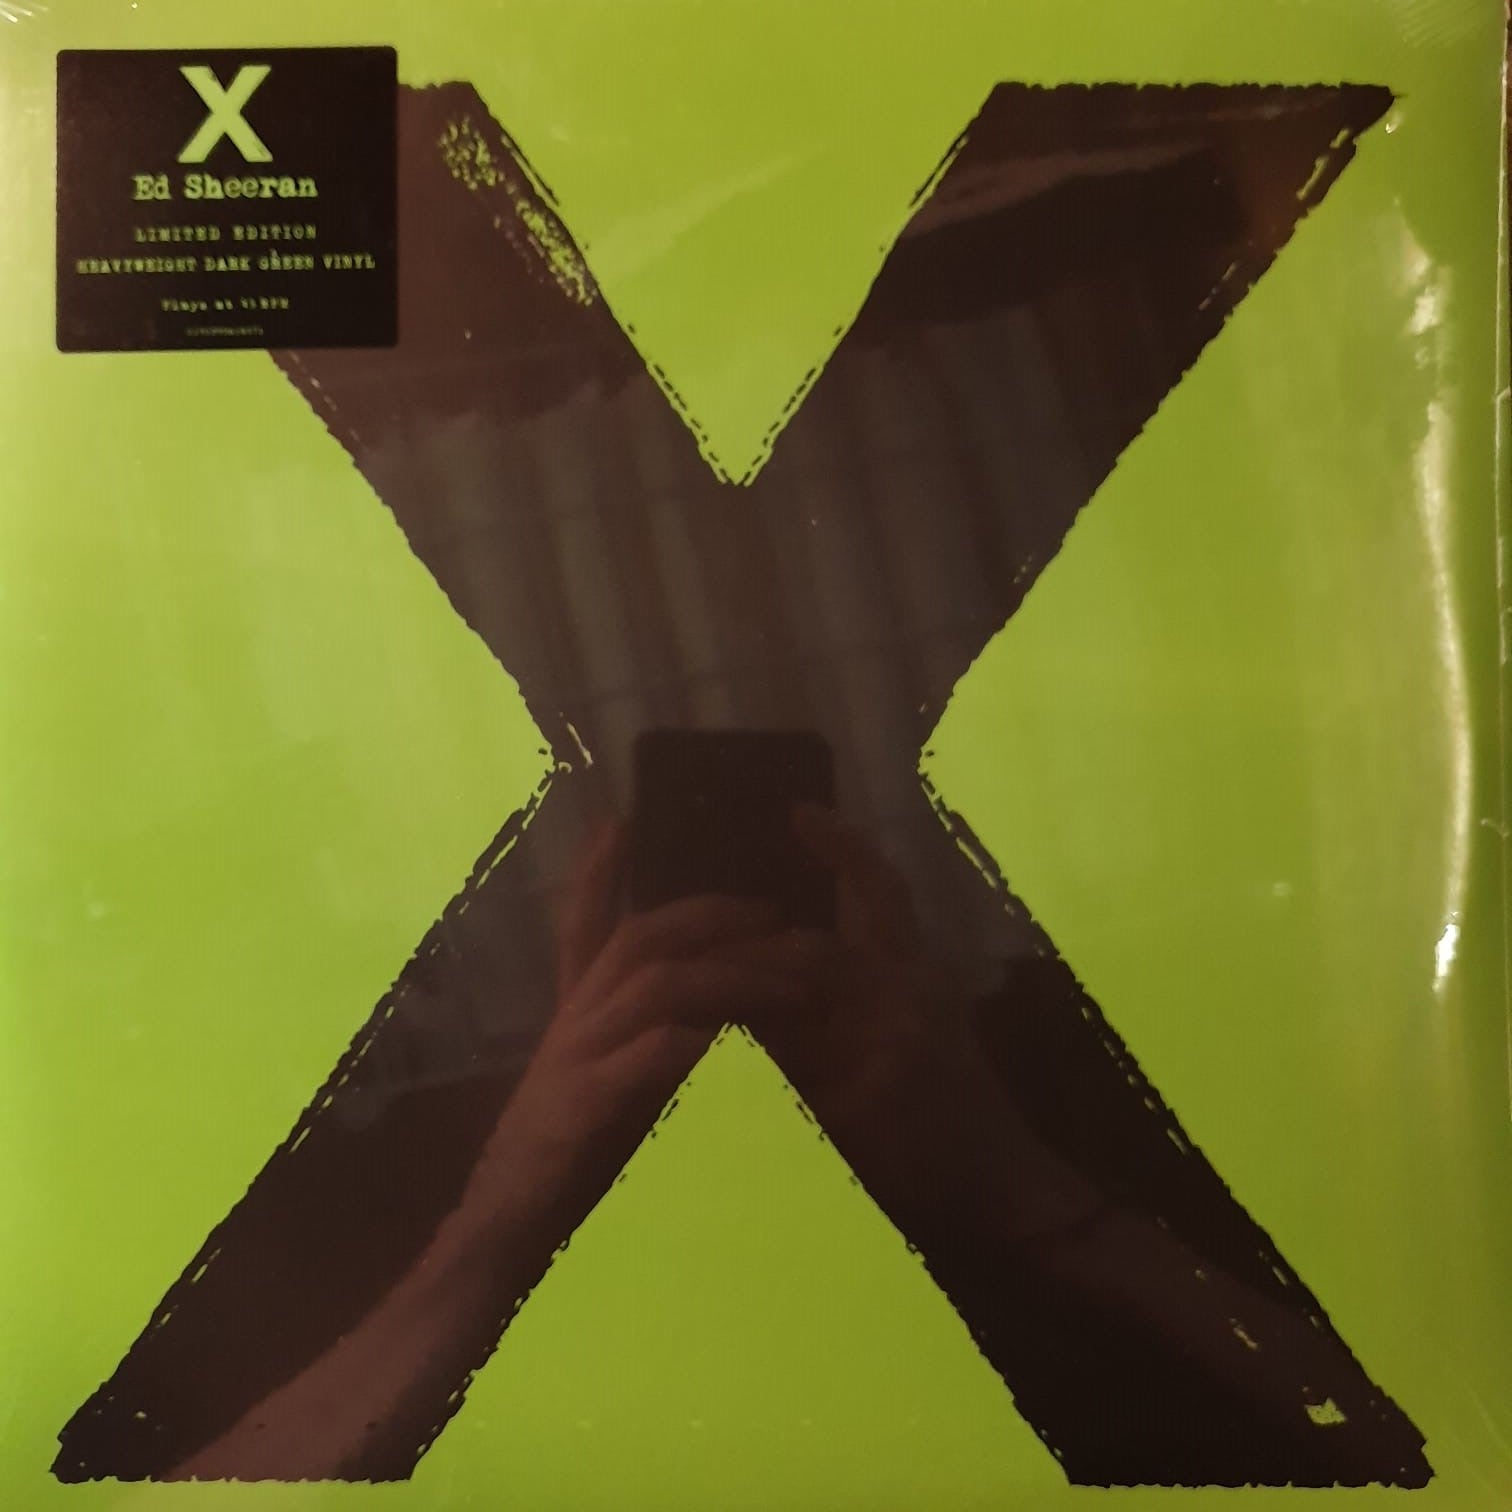 NEW - Ed Sheeran, X (Dark Green Vinyl)